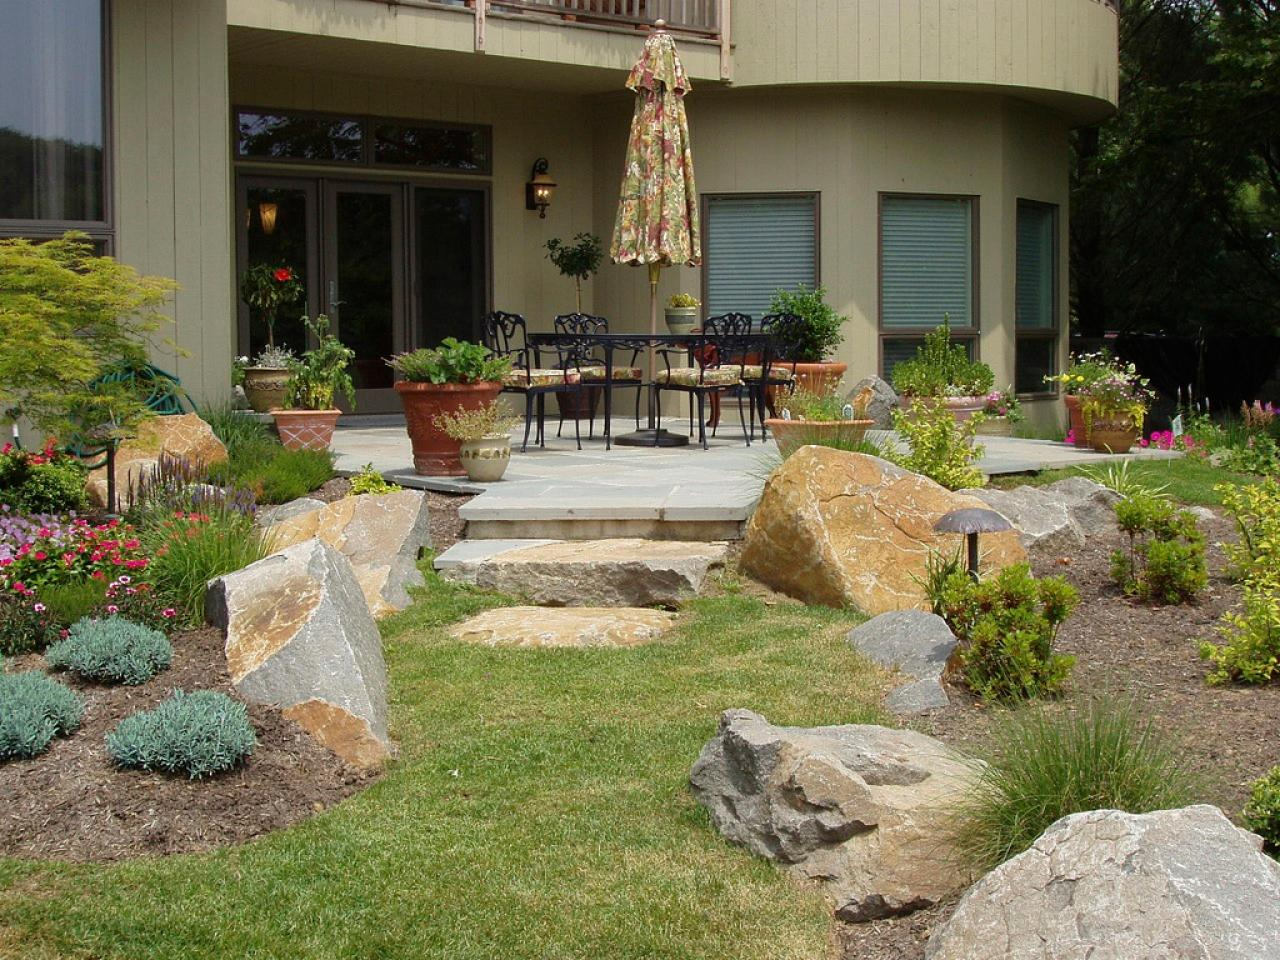 patio landscaping ideas  hgtv, Patio